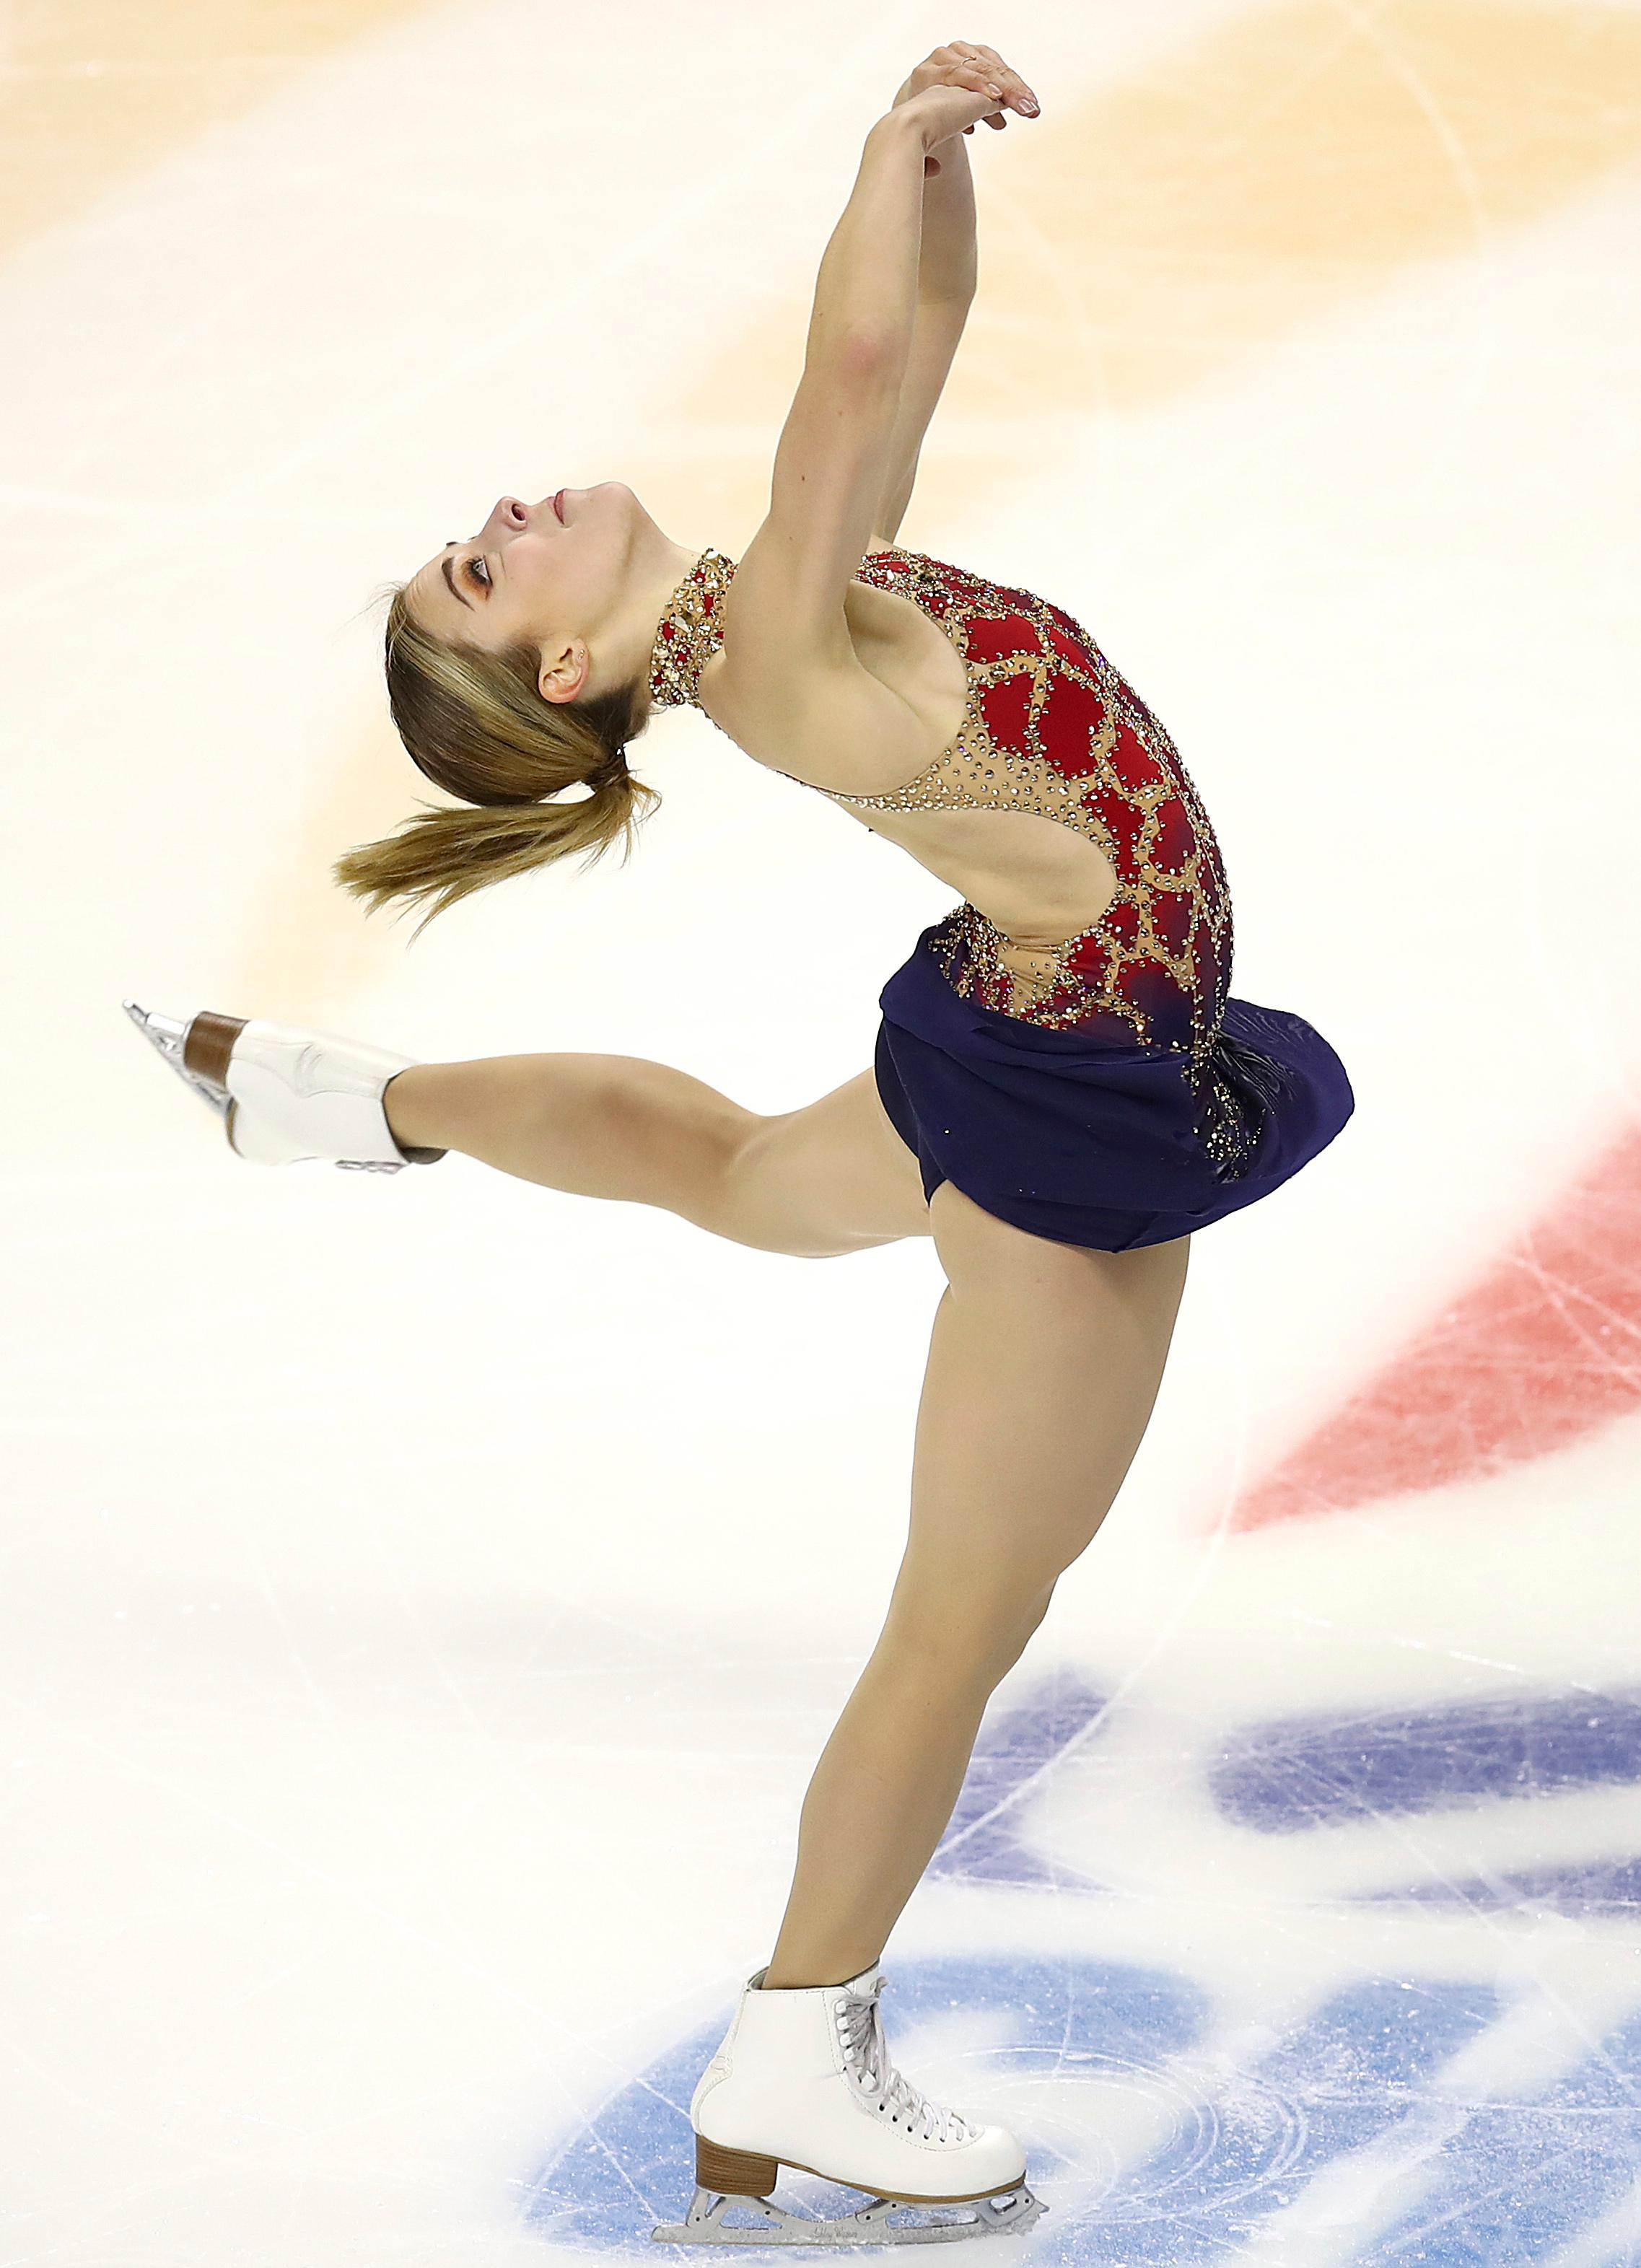 ashley wagner u0026 39 s free skate friday night will determine her olympic fate